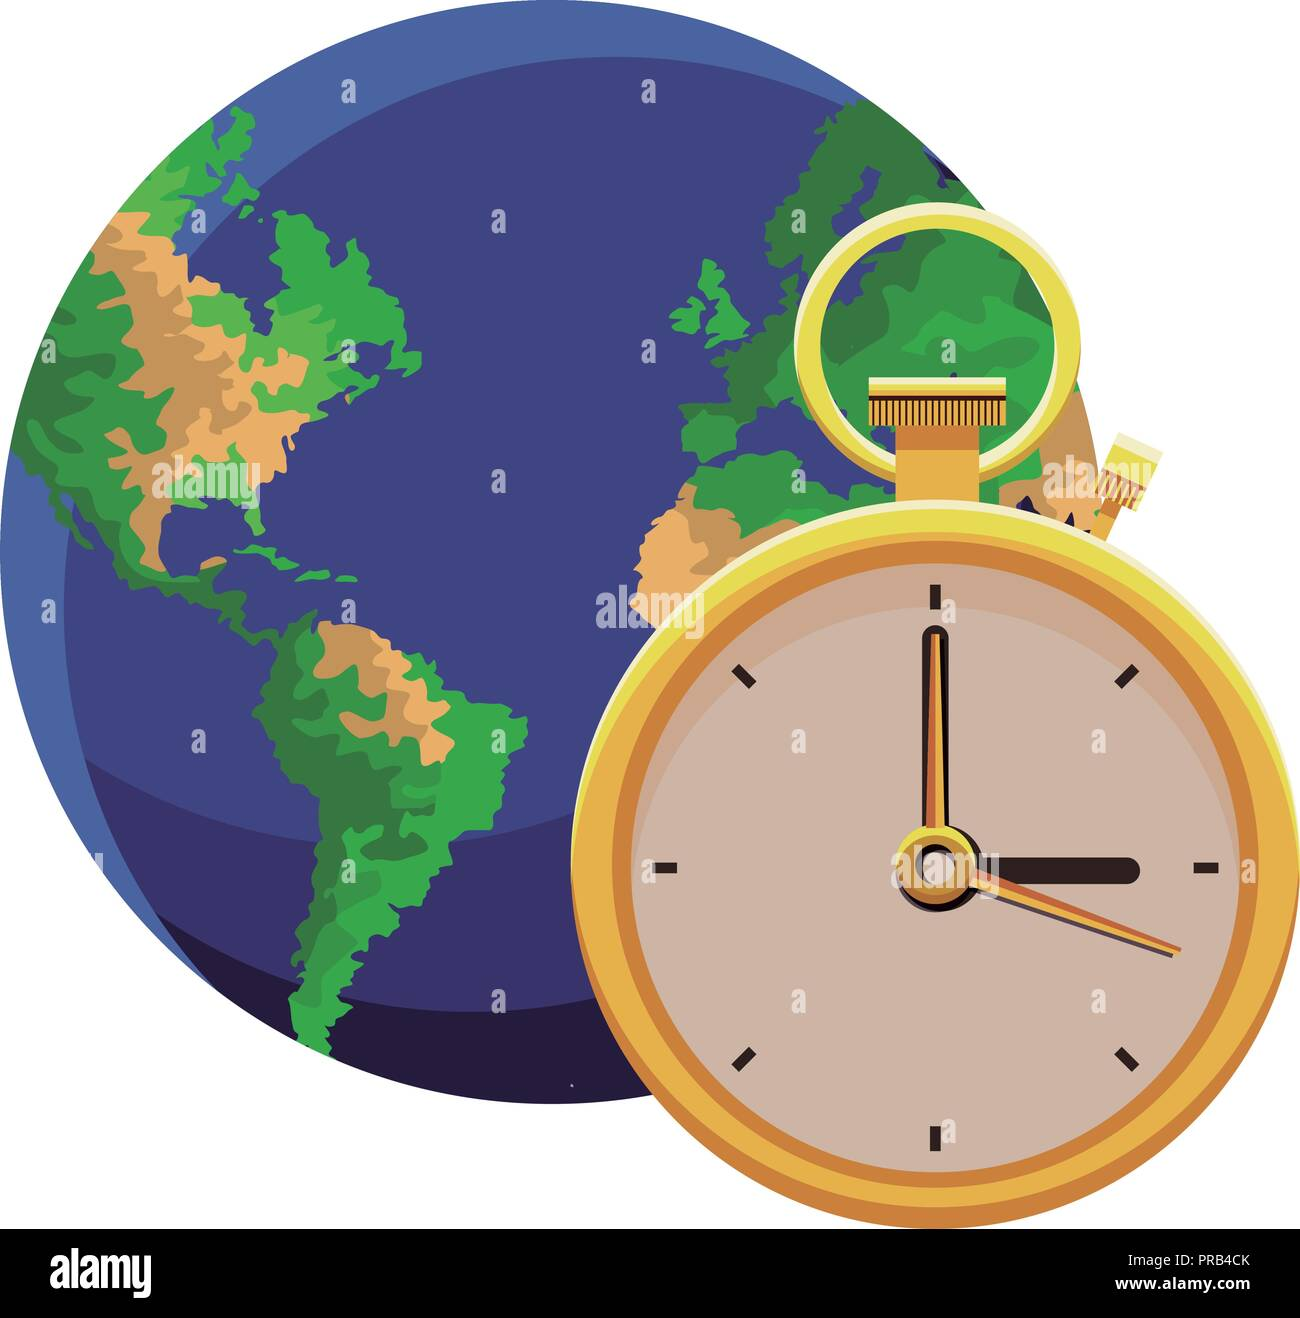 World Time Zone Map Stock Photos & World Time Zone Map Stock ...